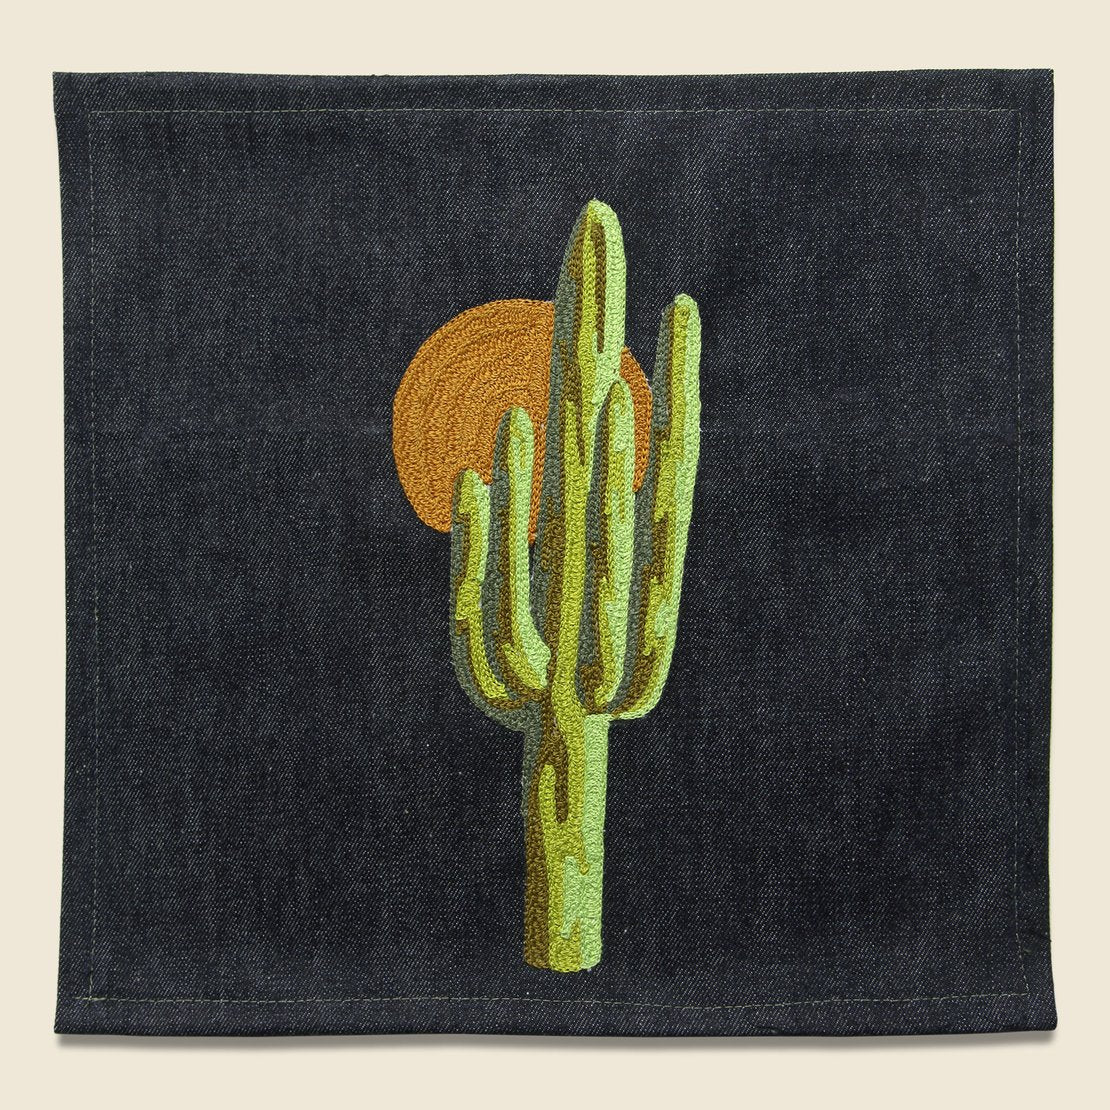 Fort Lonesome Large Direct Stitch Embroidery - Sunset Saguaro Cactus